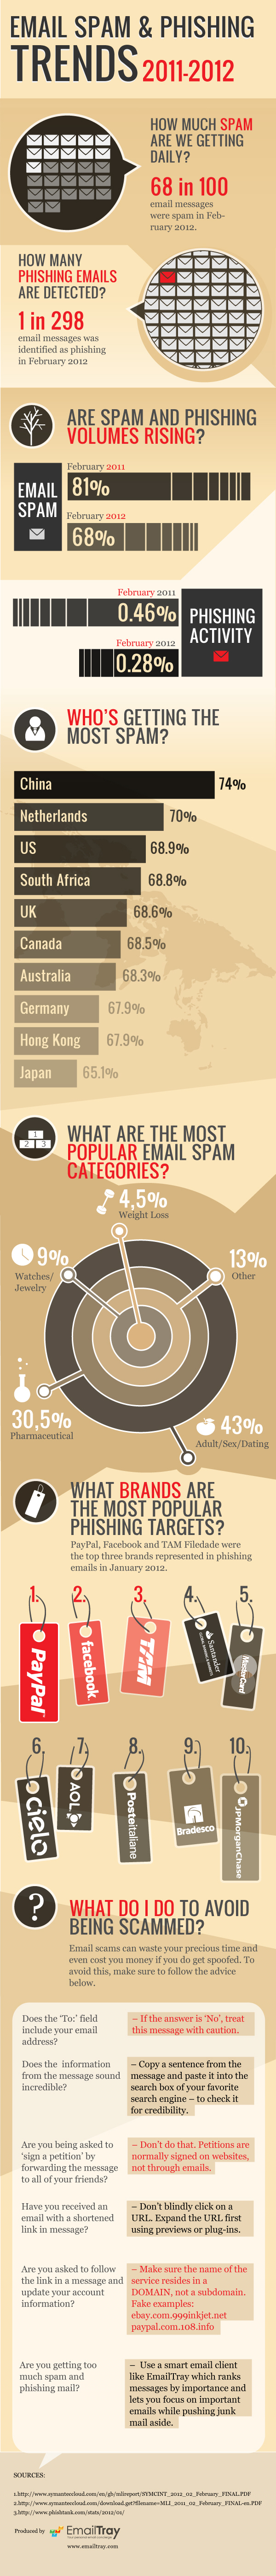 Email spam trends